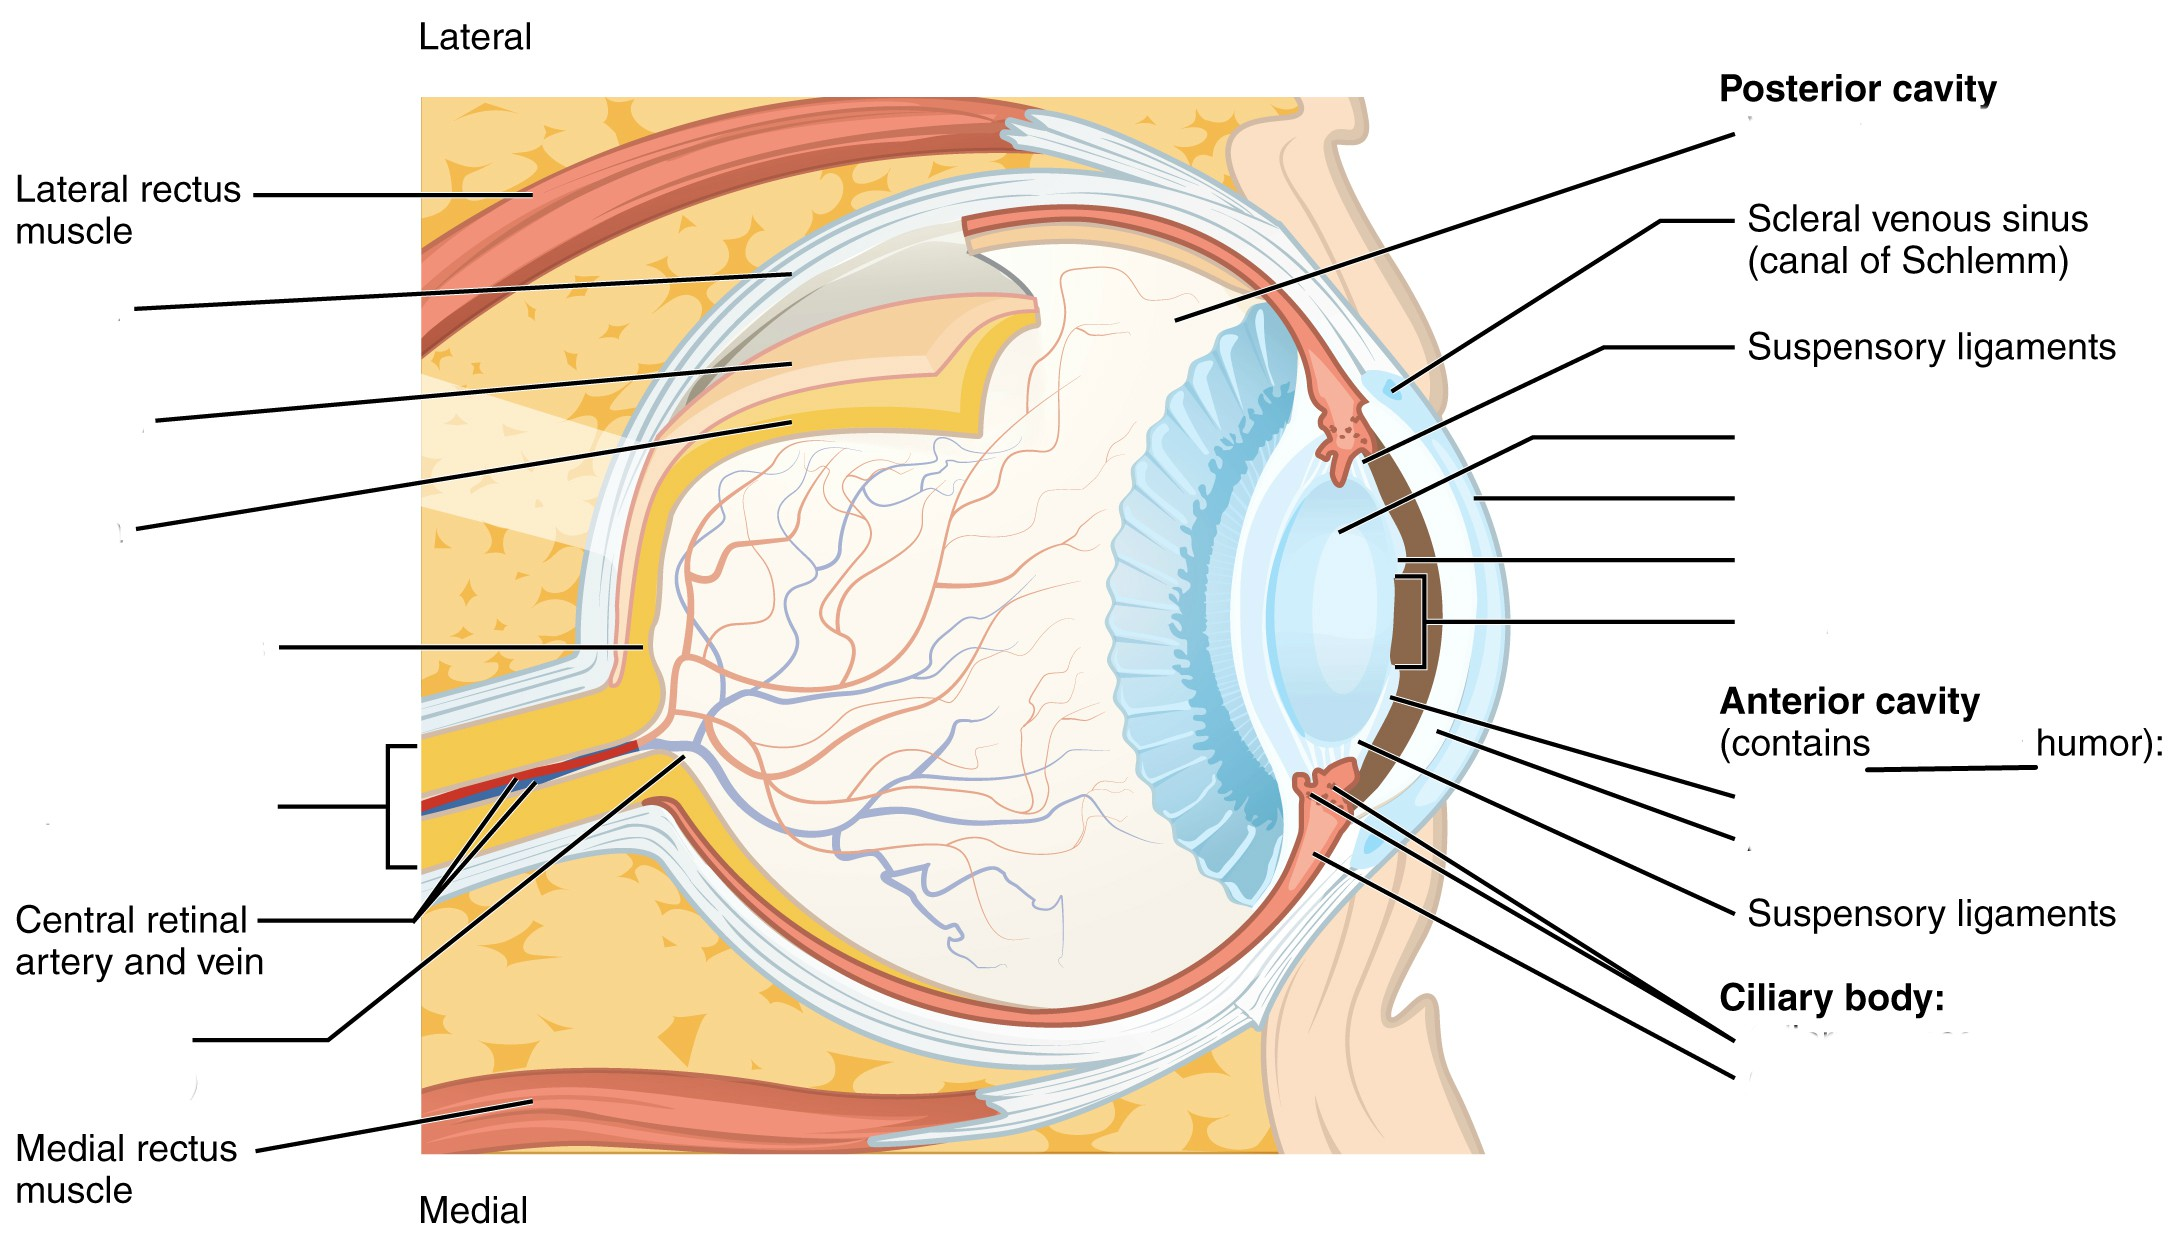 Predefined space to Label the structures and regions of the Human Eye Anatomy